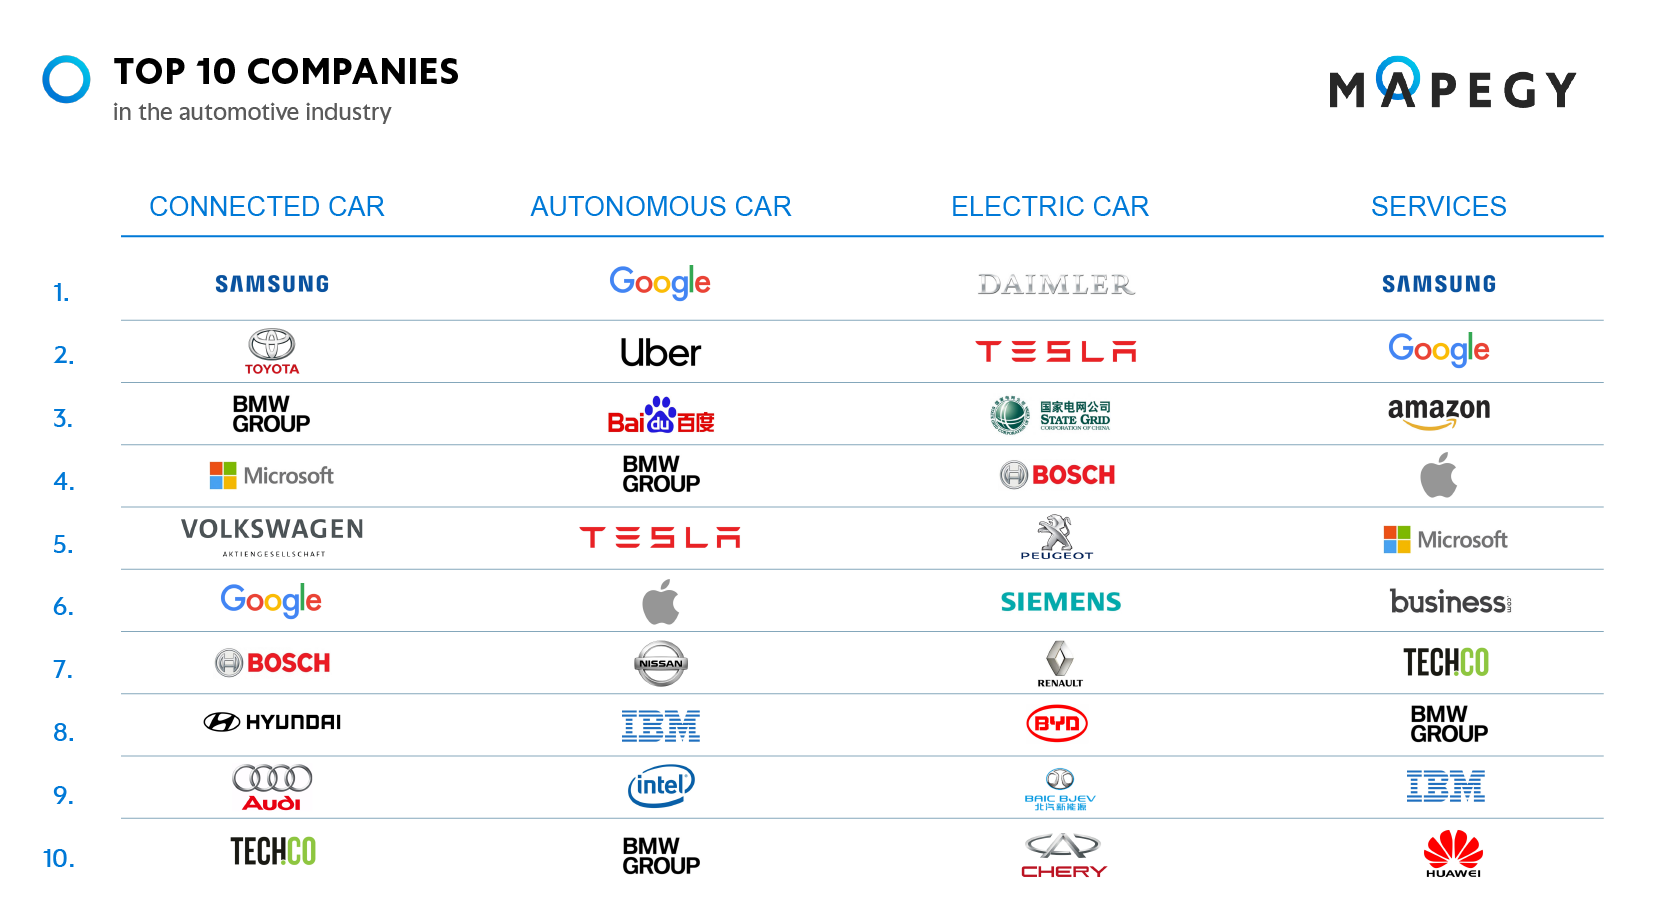 How can automakers succeed in the new mobility ecosystem